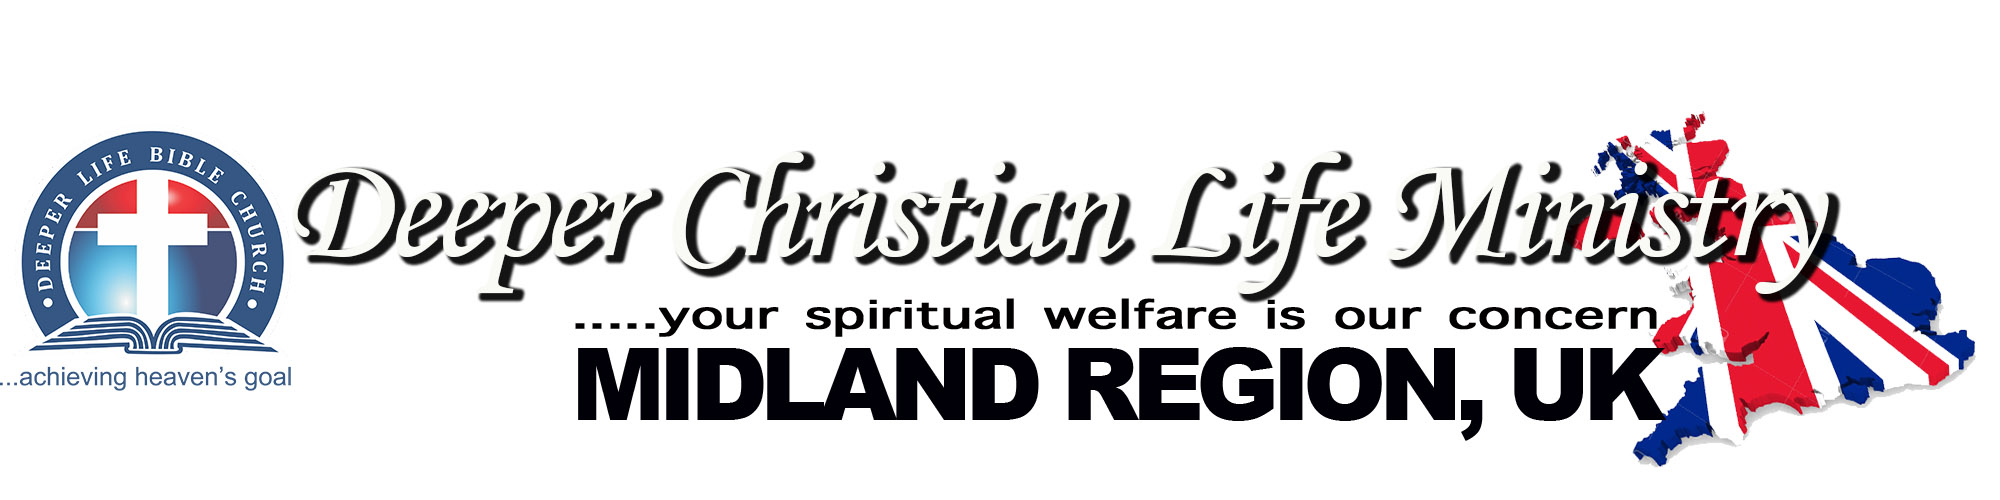 Deeper Christian Life Ministry, Midlands Region UK